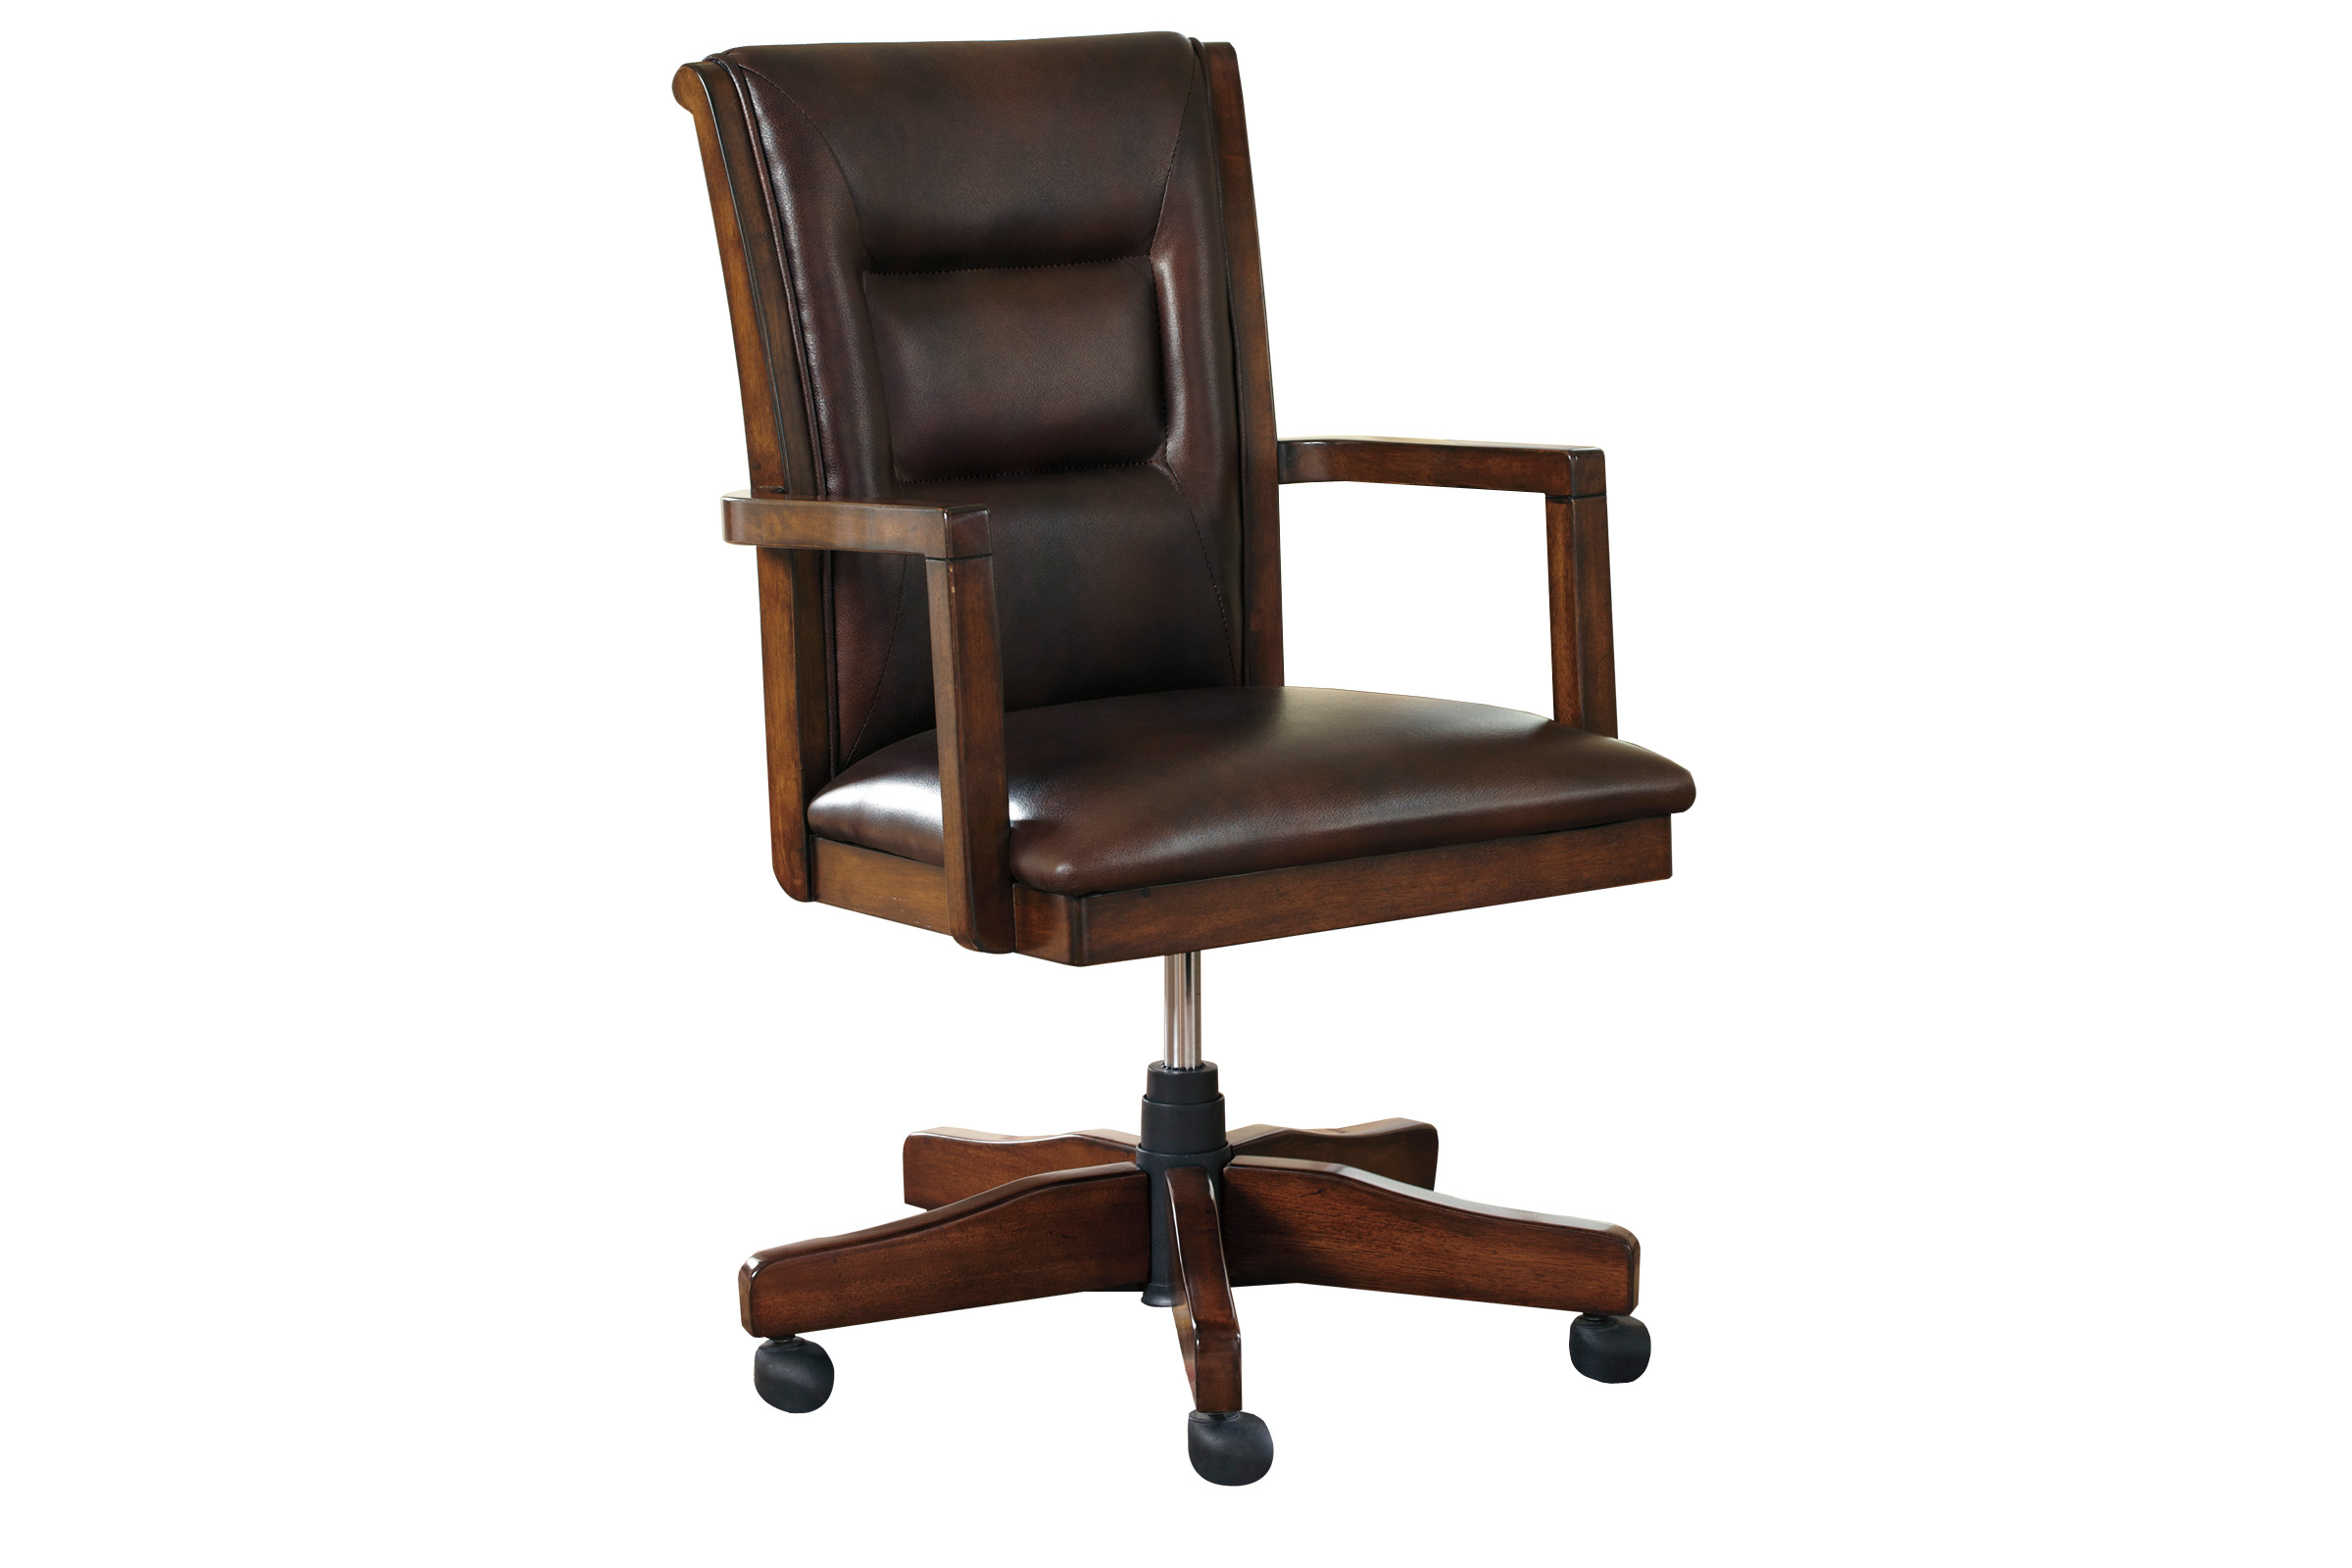 Devrik Home fice Desk Chair by Ashley